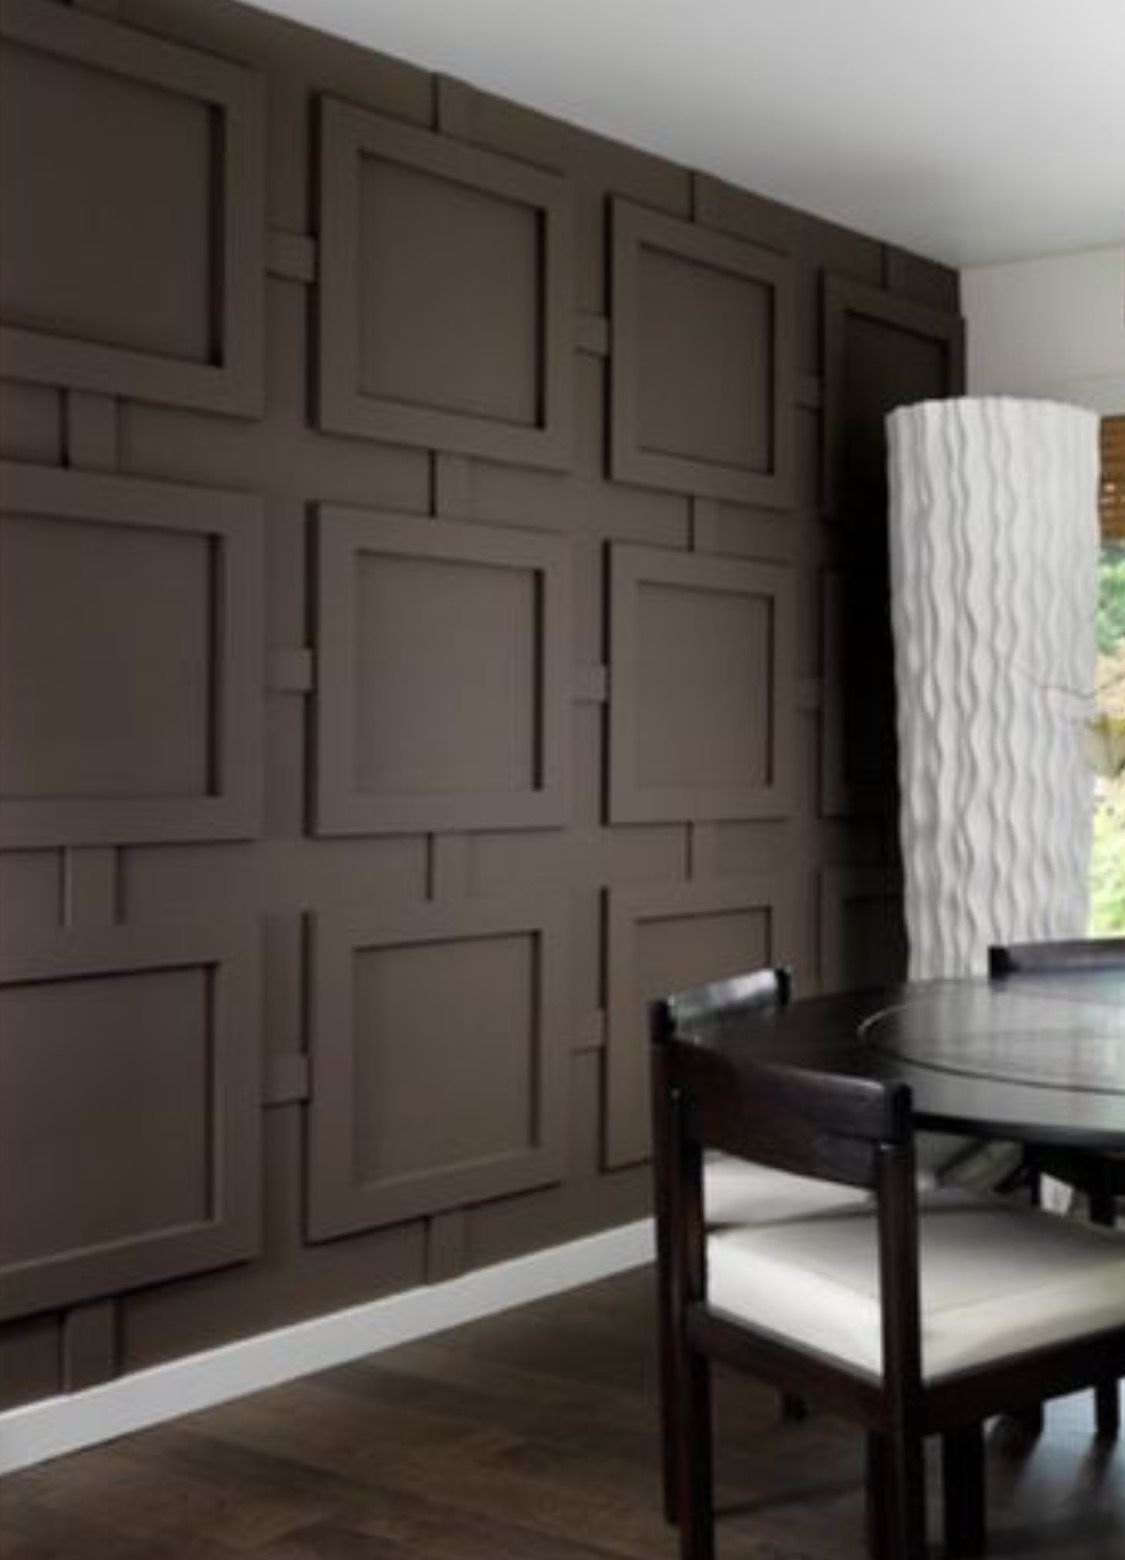 10 Nice Wood Trim Ideas For Walls 15 various accent wall ideas gallery for your sweet home home